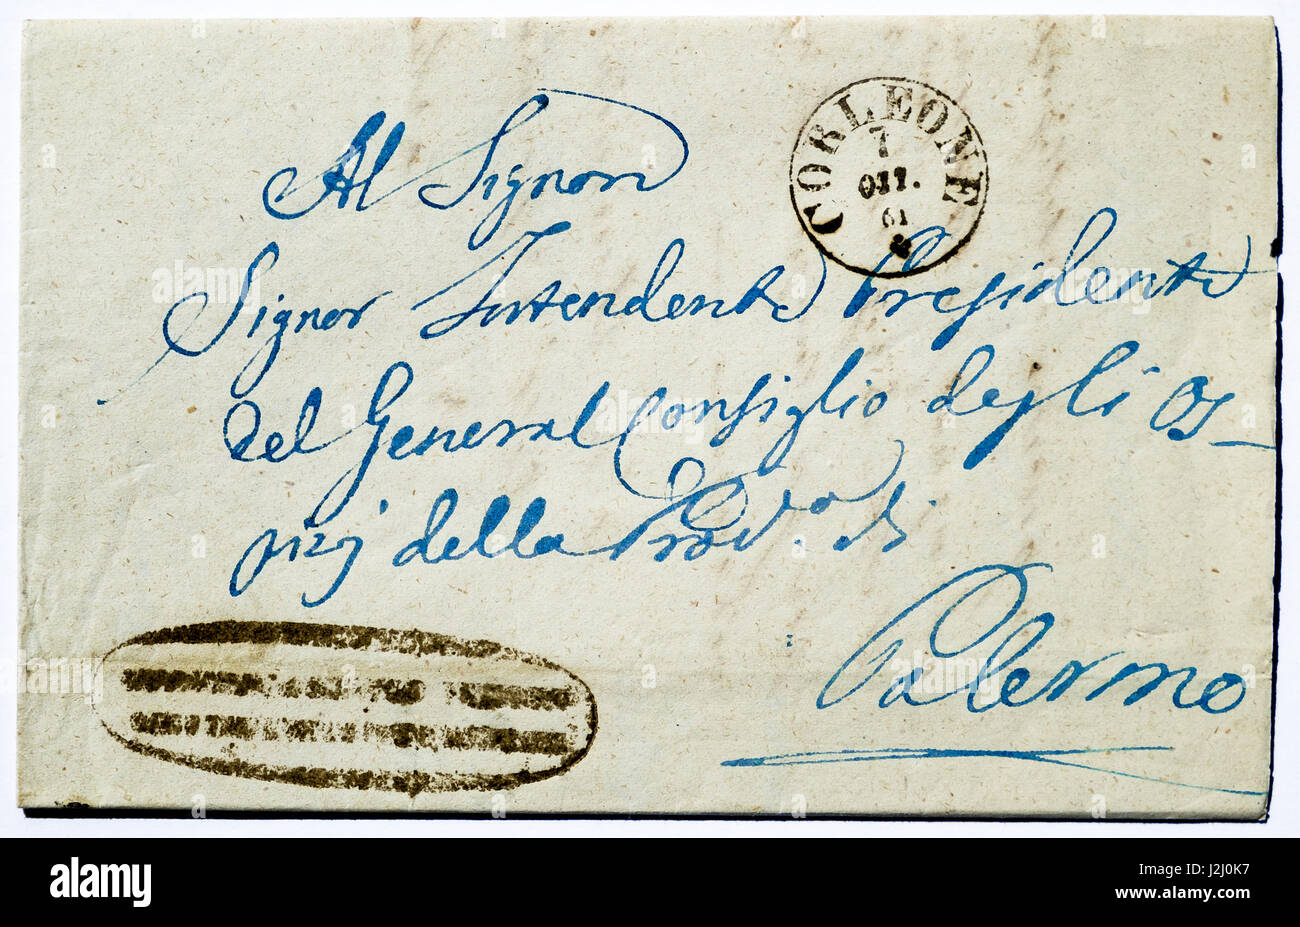 Early 19th century hand-written Italian envelope, 1861. - Stock Image